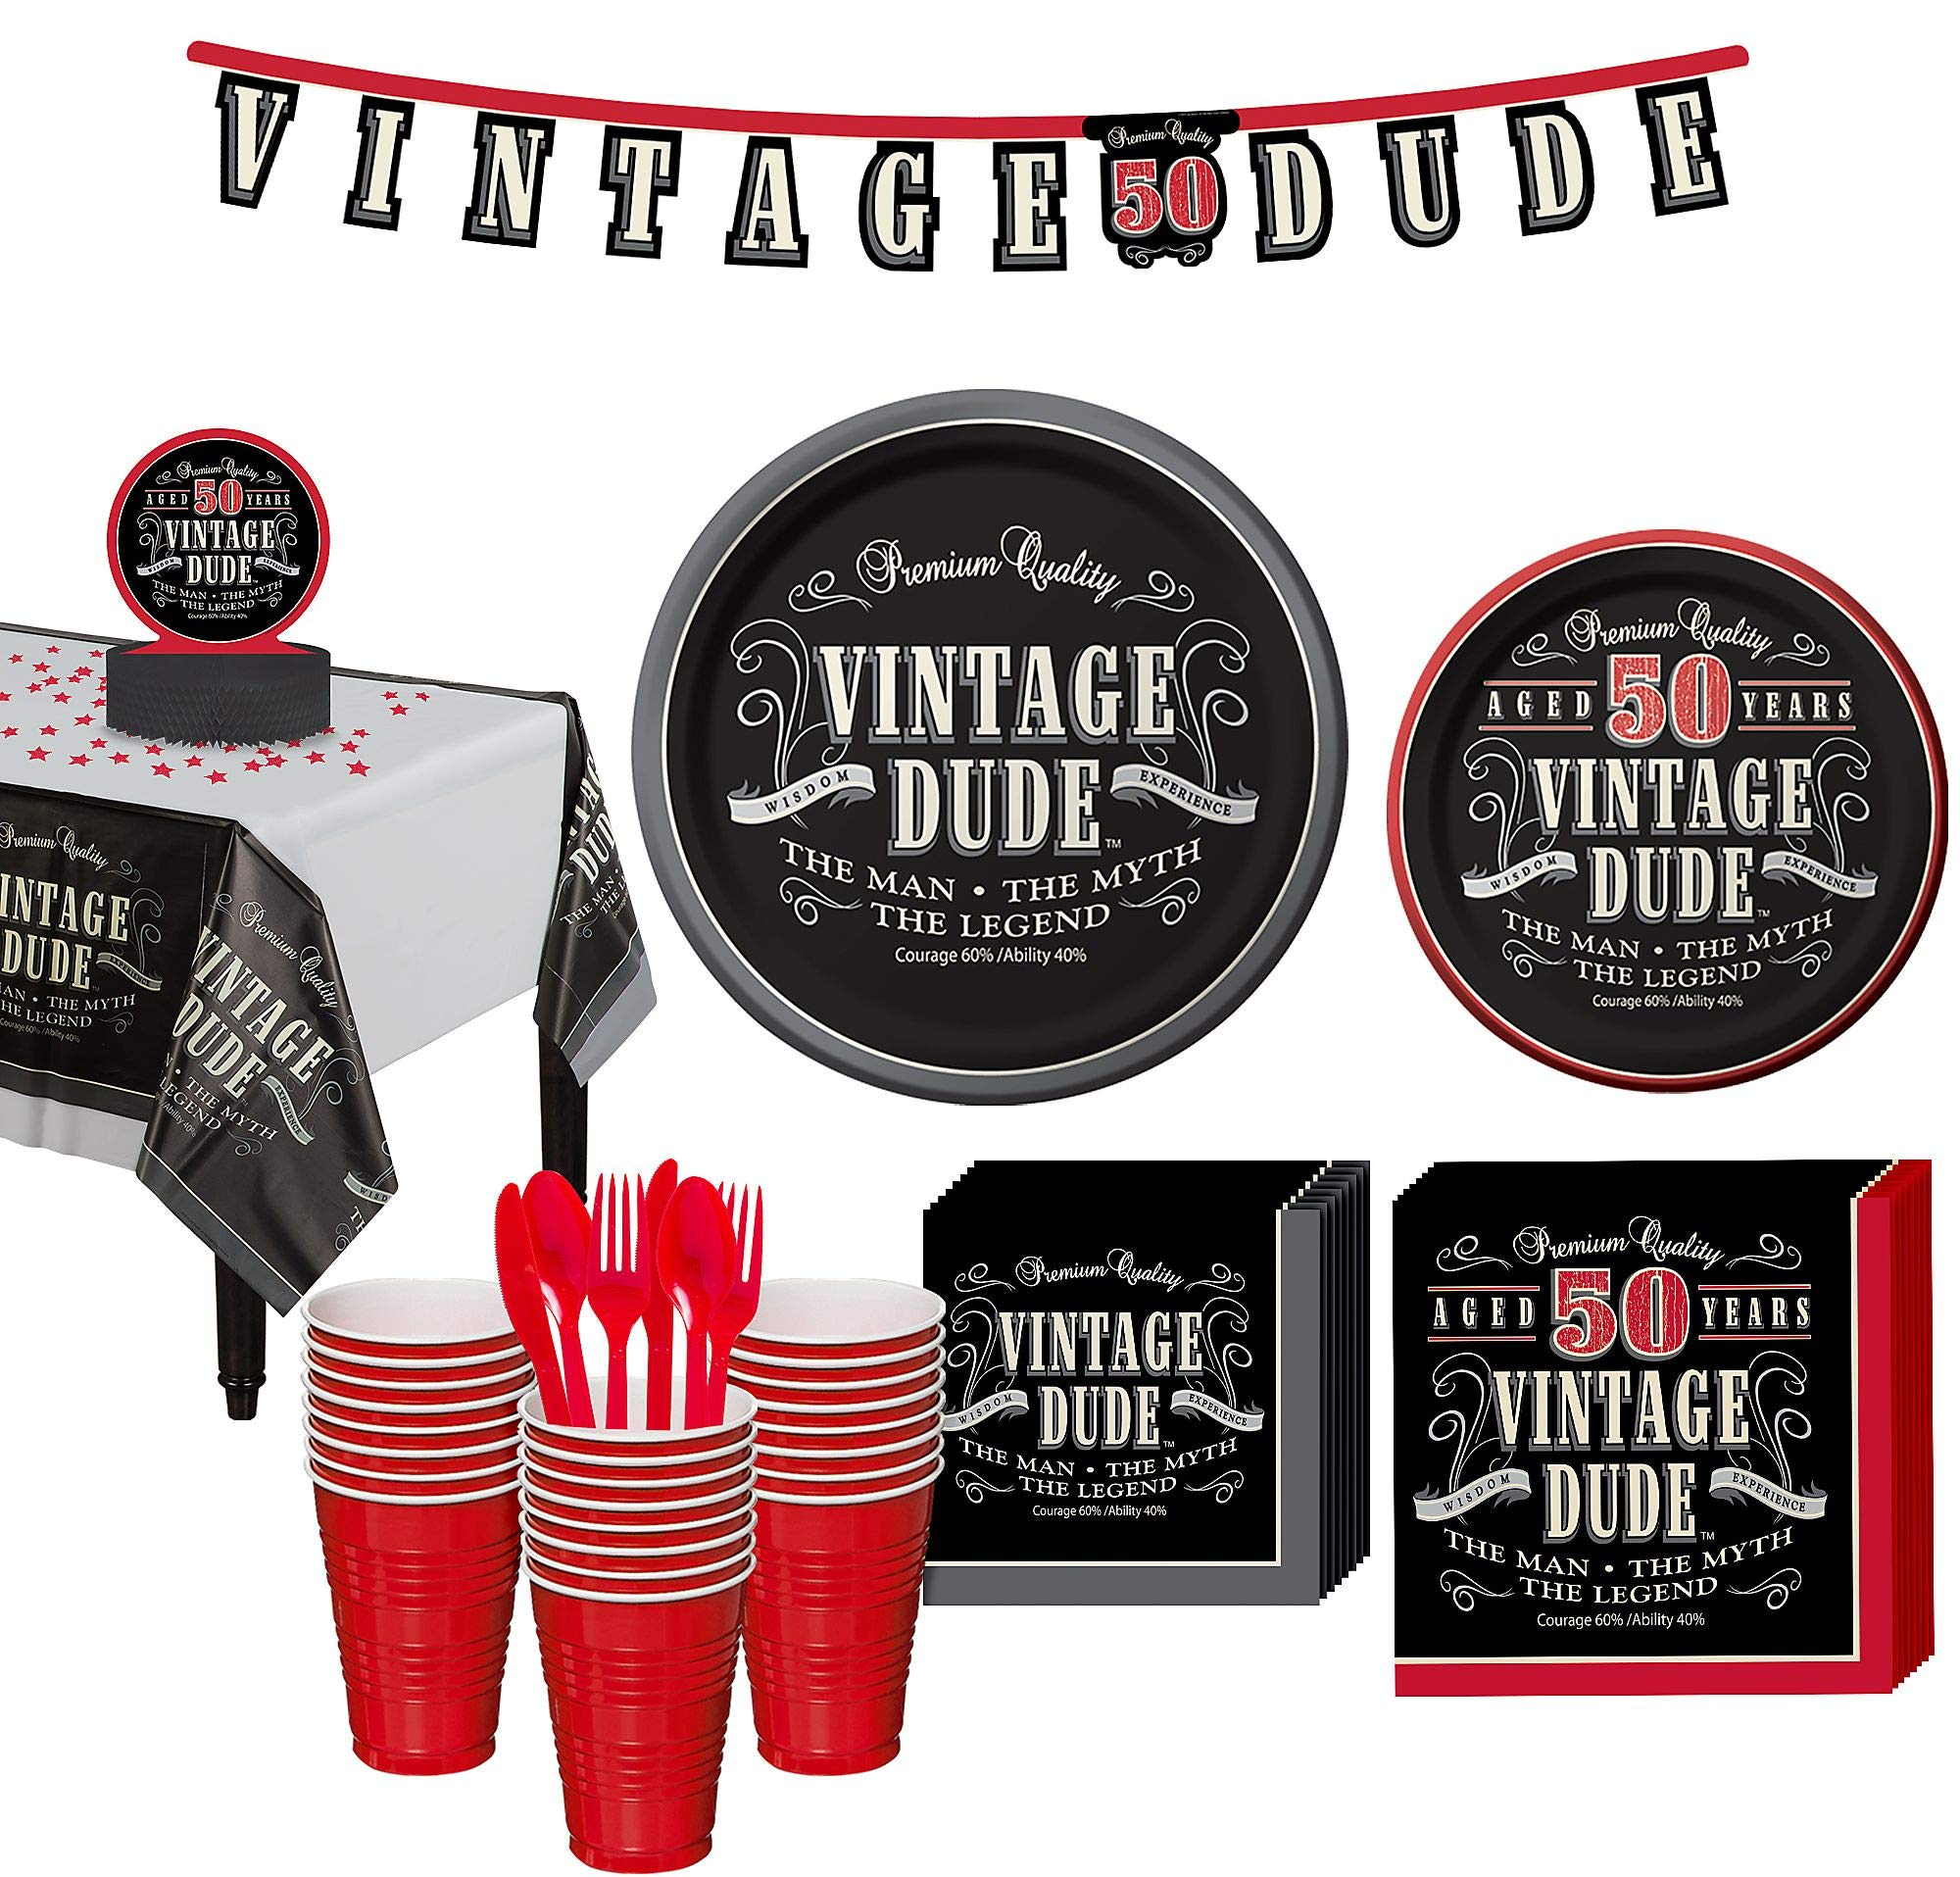 Party City Vintage Dude 50th Birthday Party Kit for 32 Guests, 278 Pieces, Includes Plates, Napkins, and Decorations by Party City (Image #1)